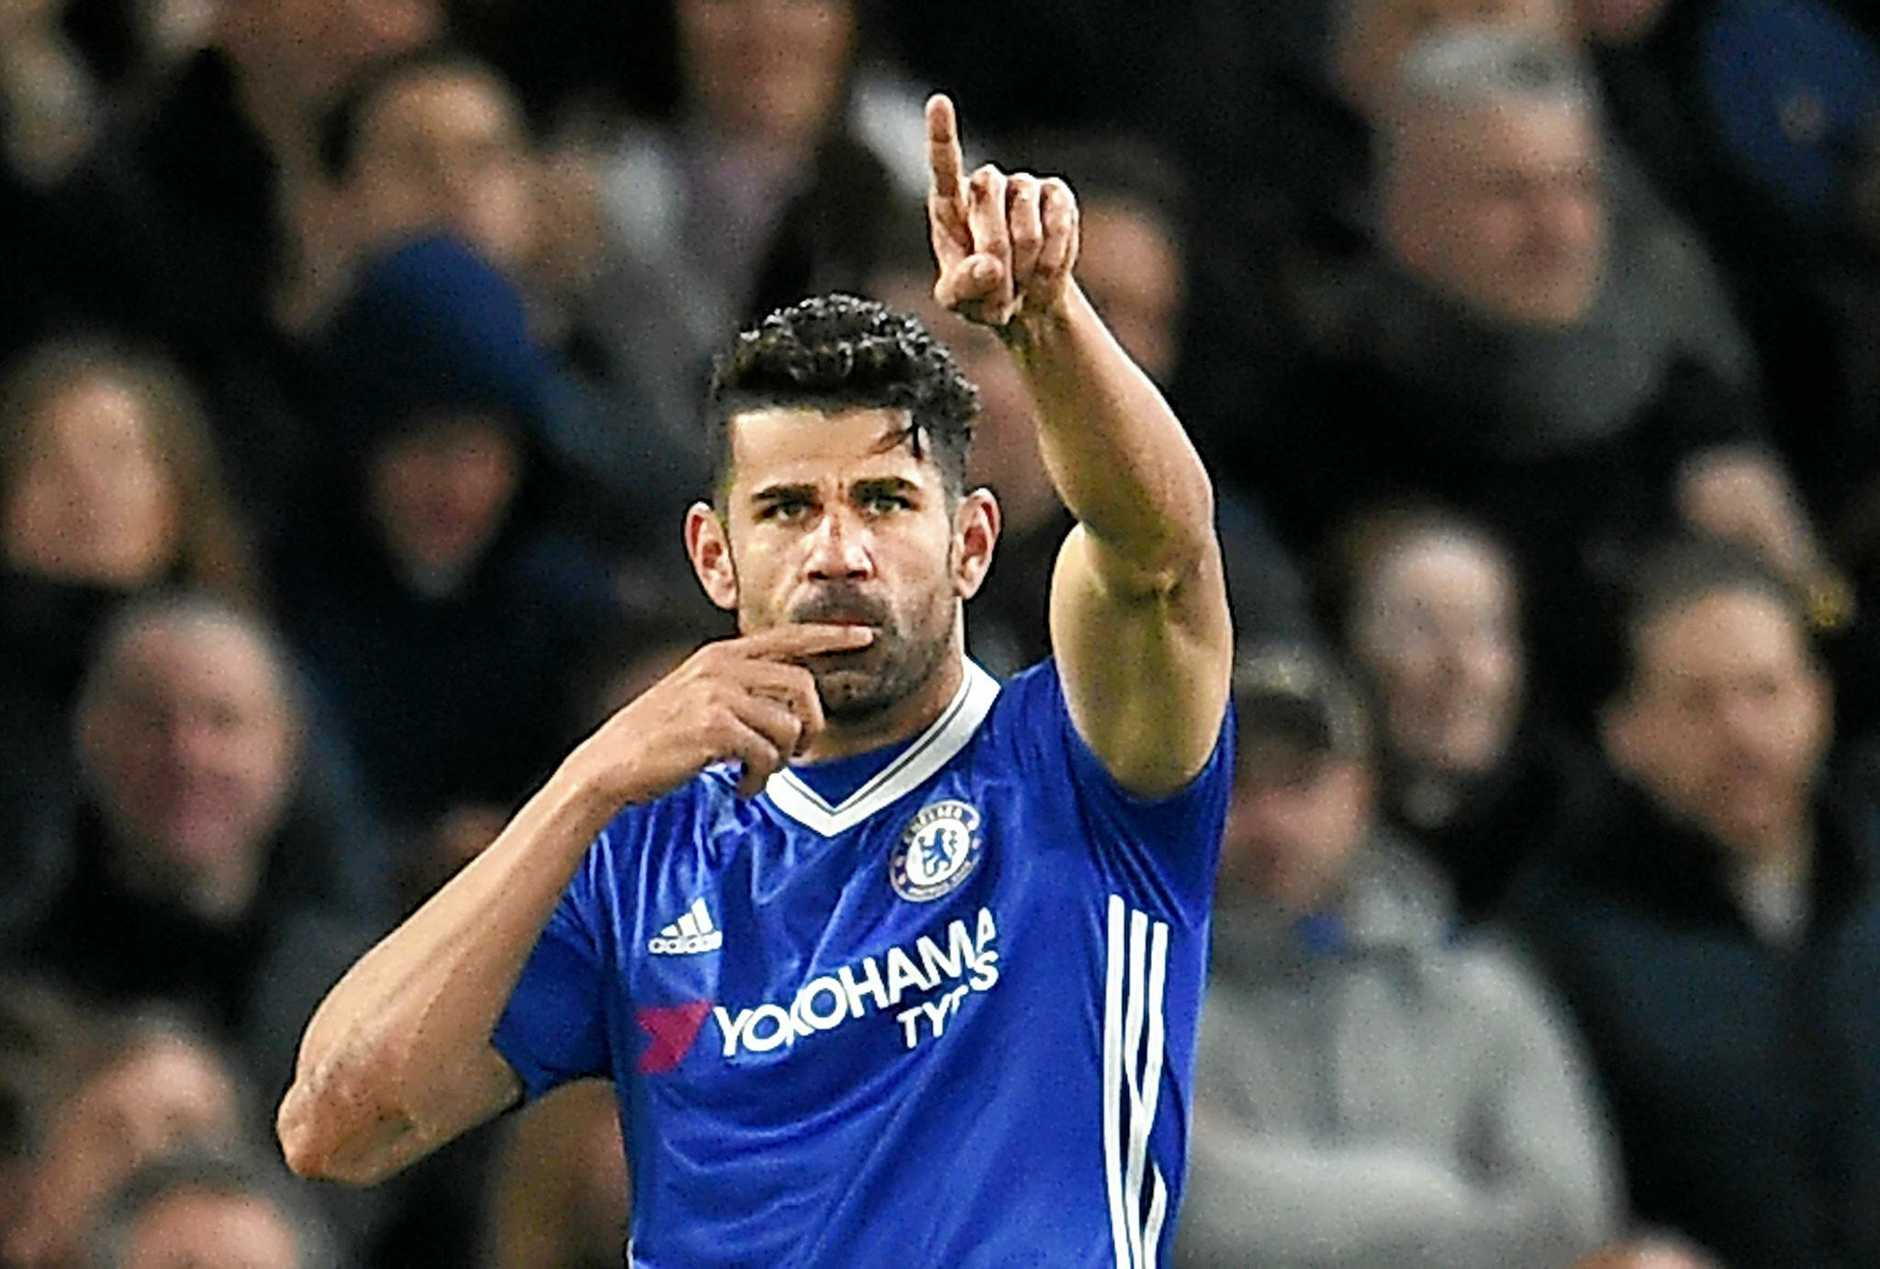 Chelsea's Diego Costa celebrates after scoring against Southampton.